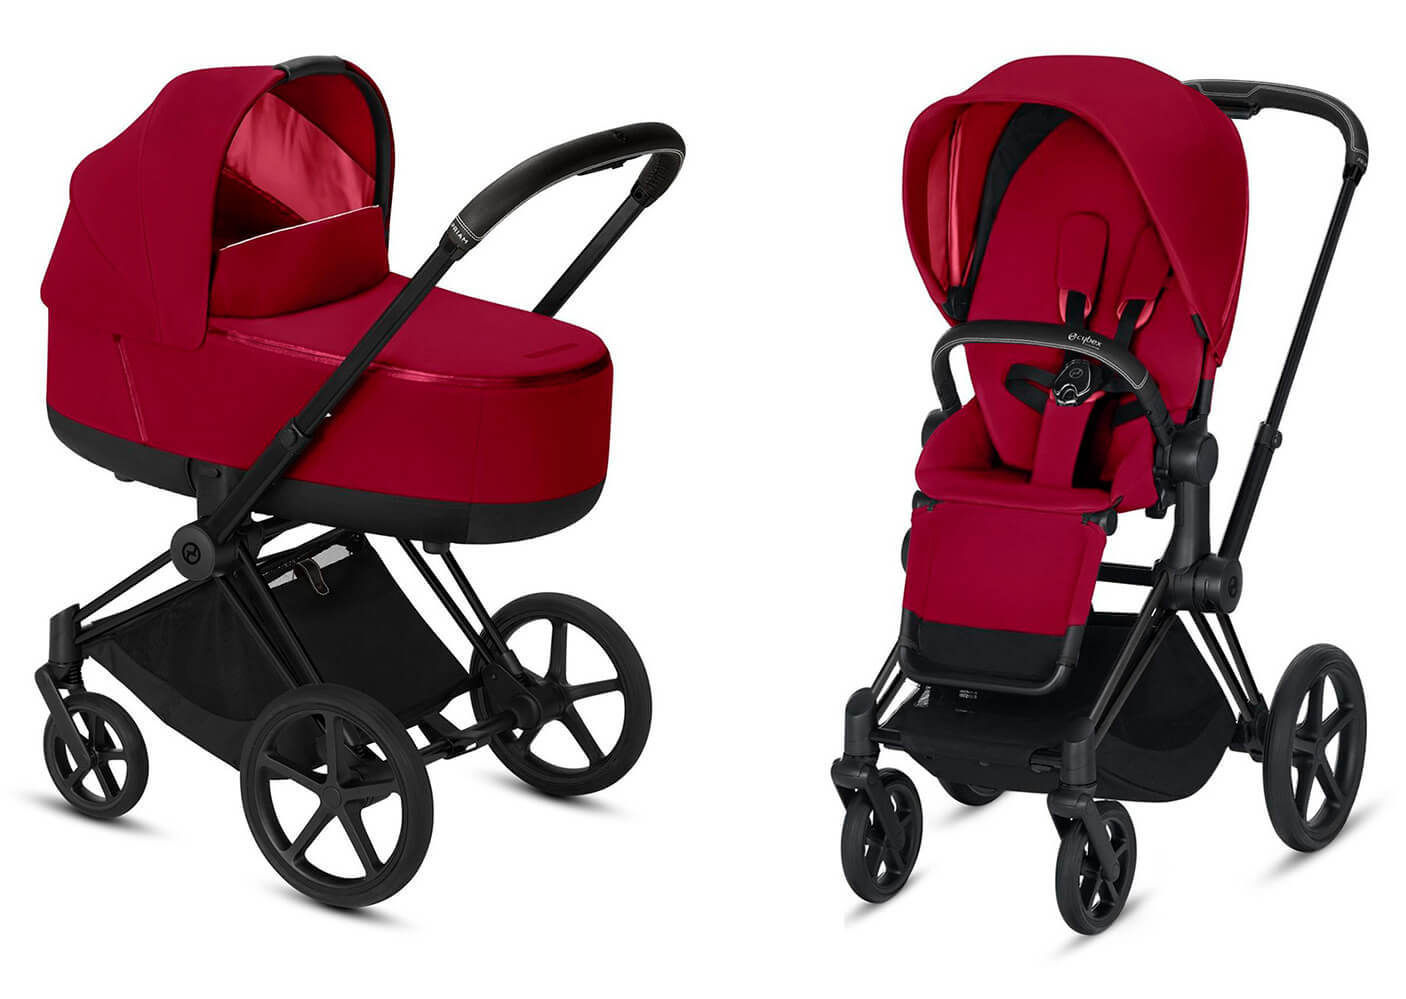 Цвета Cybex Priam 2 в 1 Детская коляска Cybex Priam III 2 в 1 True Red шасси Matt Black cybex-priam-iii-2-in-1-true-red-matt-black.jpg